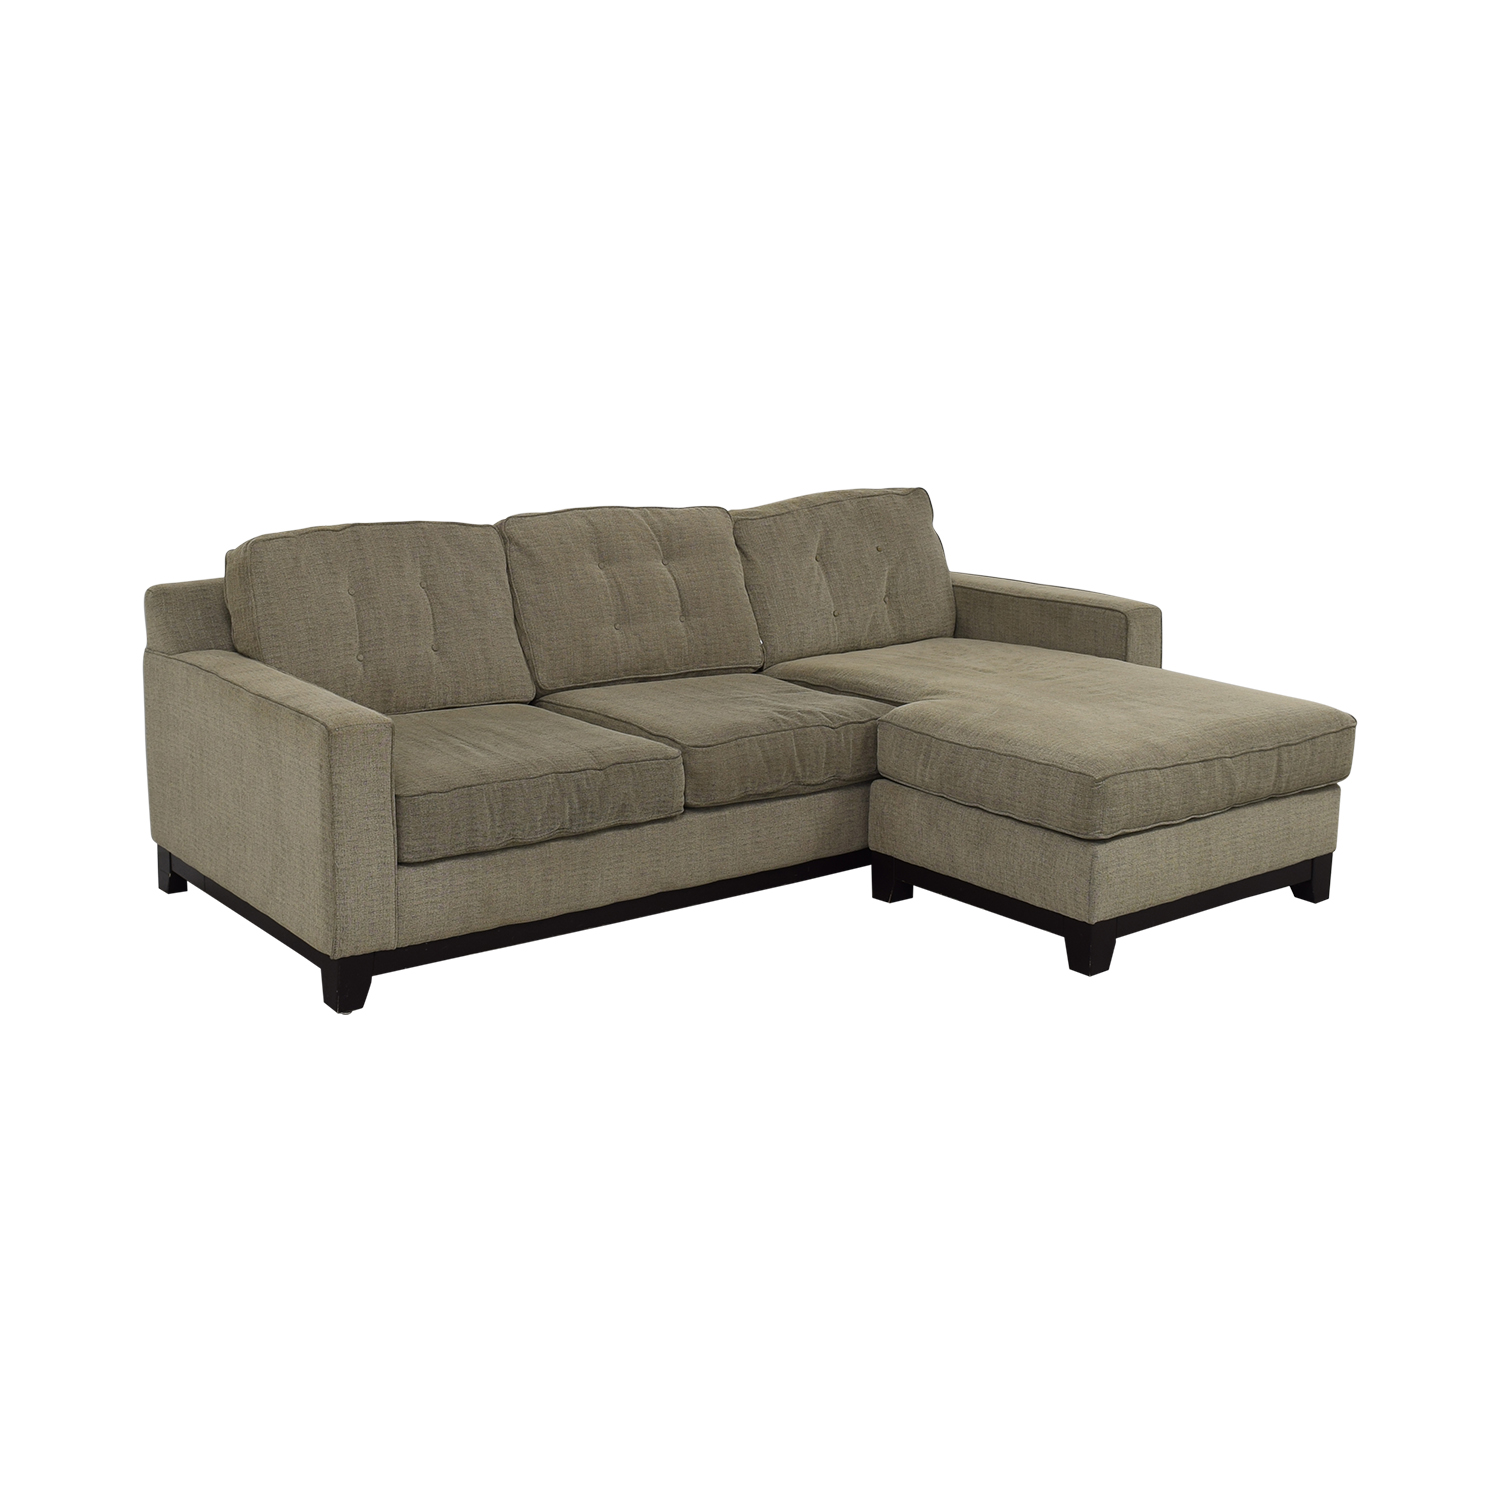 shop Macy's Macy's Grey Tufted Chaise Sectional online